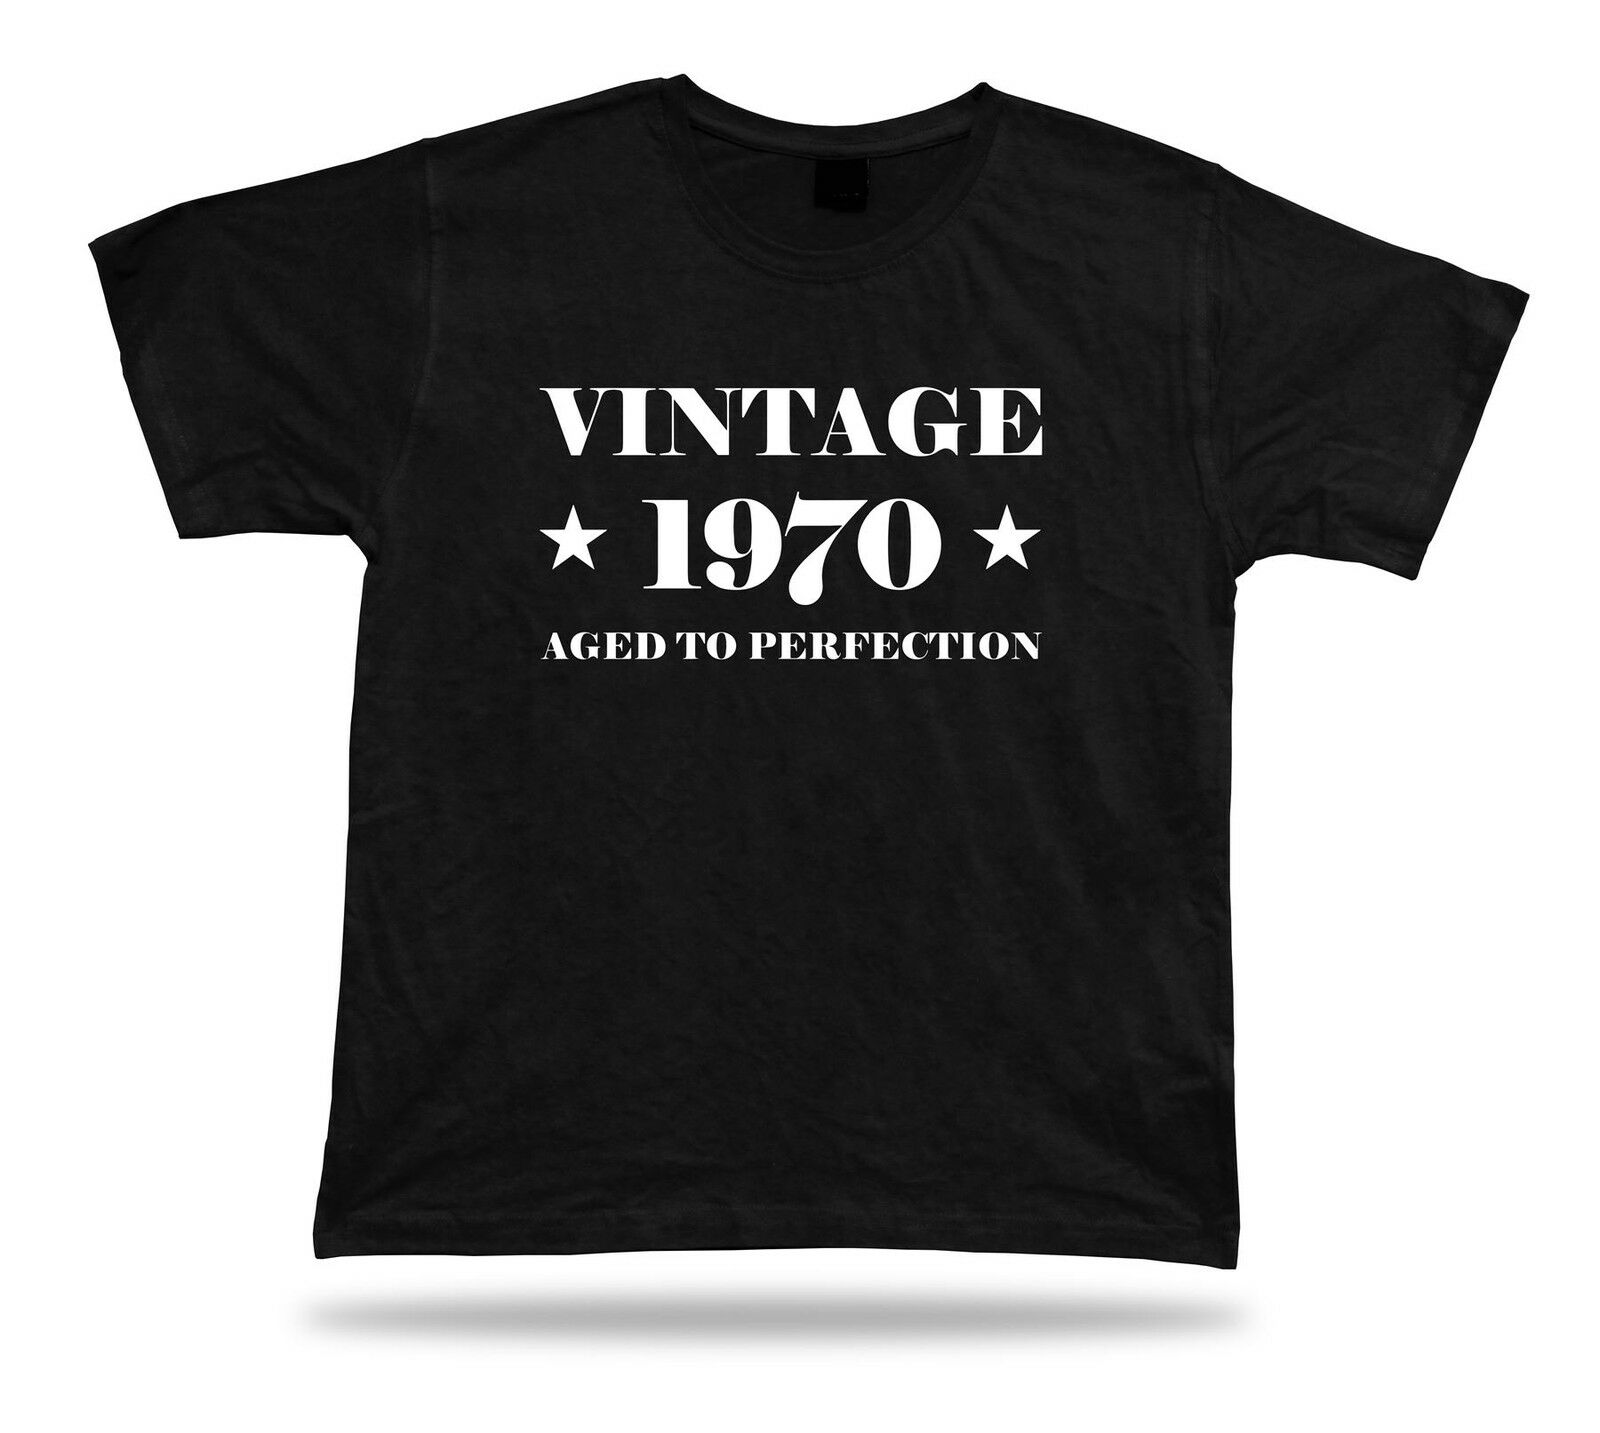 Printed T-shirt tee <font><b>vintage</b></font> <font><b>1970</b></font> aged happy birthday present gift idea original image